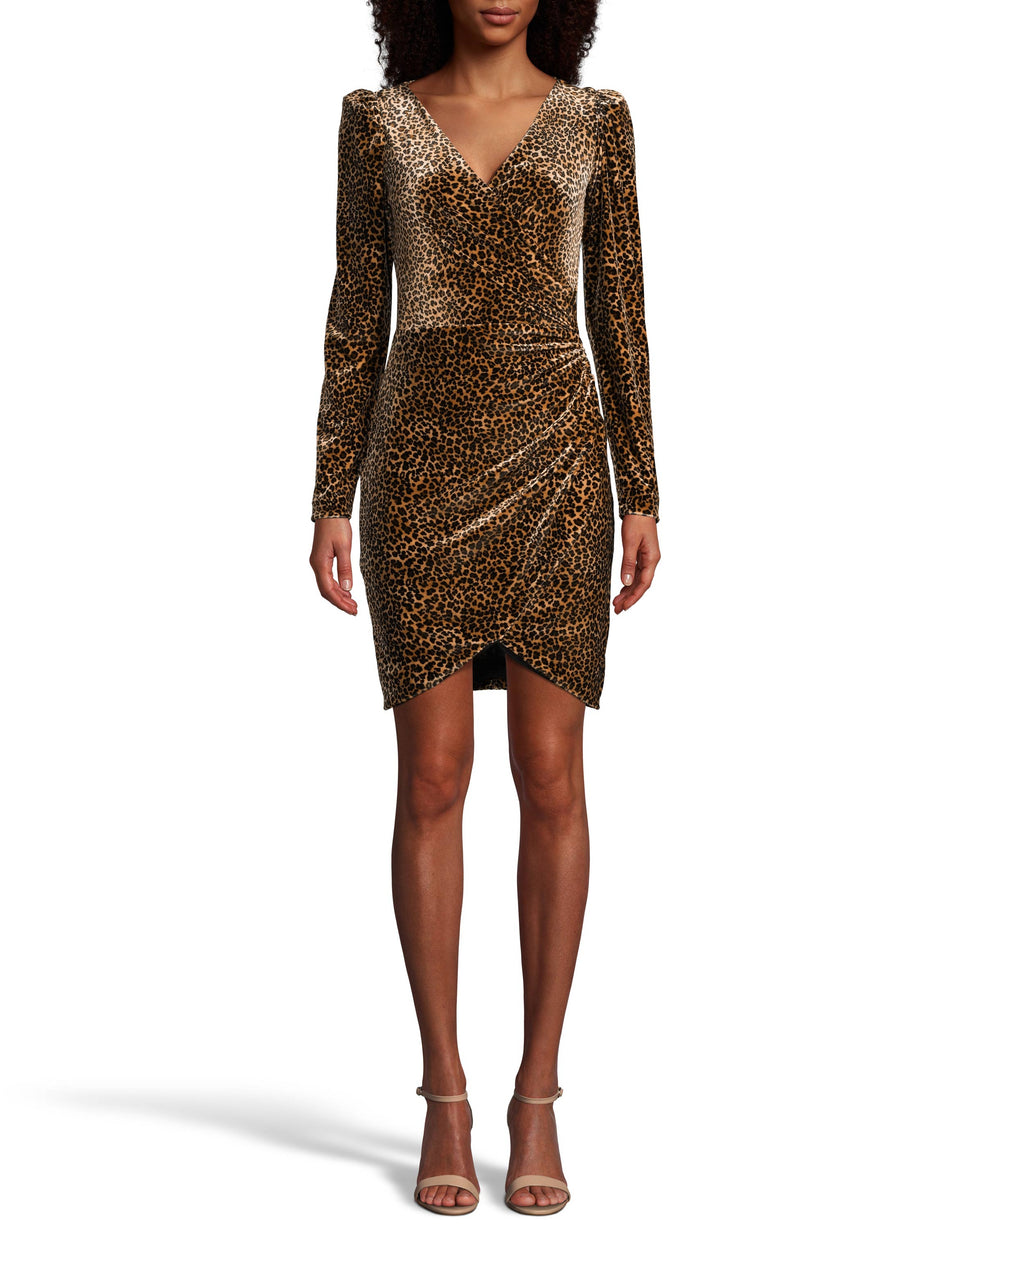 CE18120 - LEOPARD VELVET FAUX WRAP DRESS - dresses - short - A flattering faux wrap and deep v-neck accentuate your silhouette. This classic leopard print is brought to life in soft velvet that hugs your curves without being restrictive. Back zipper for closure. Add 1 line break Stylist tip: Pair with a low pony and booties for a chic city look.